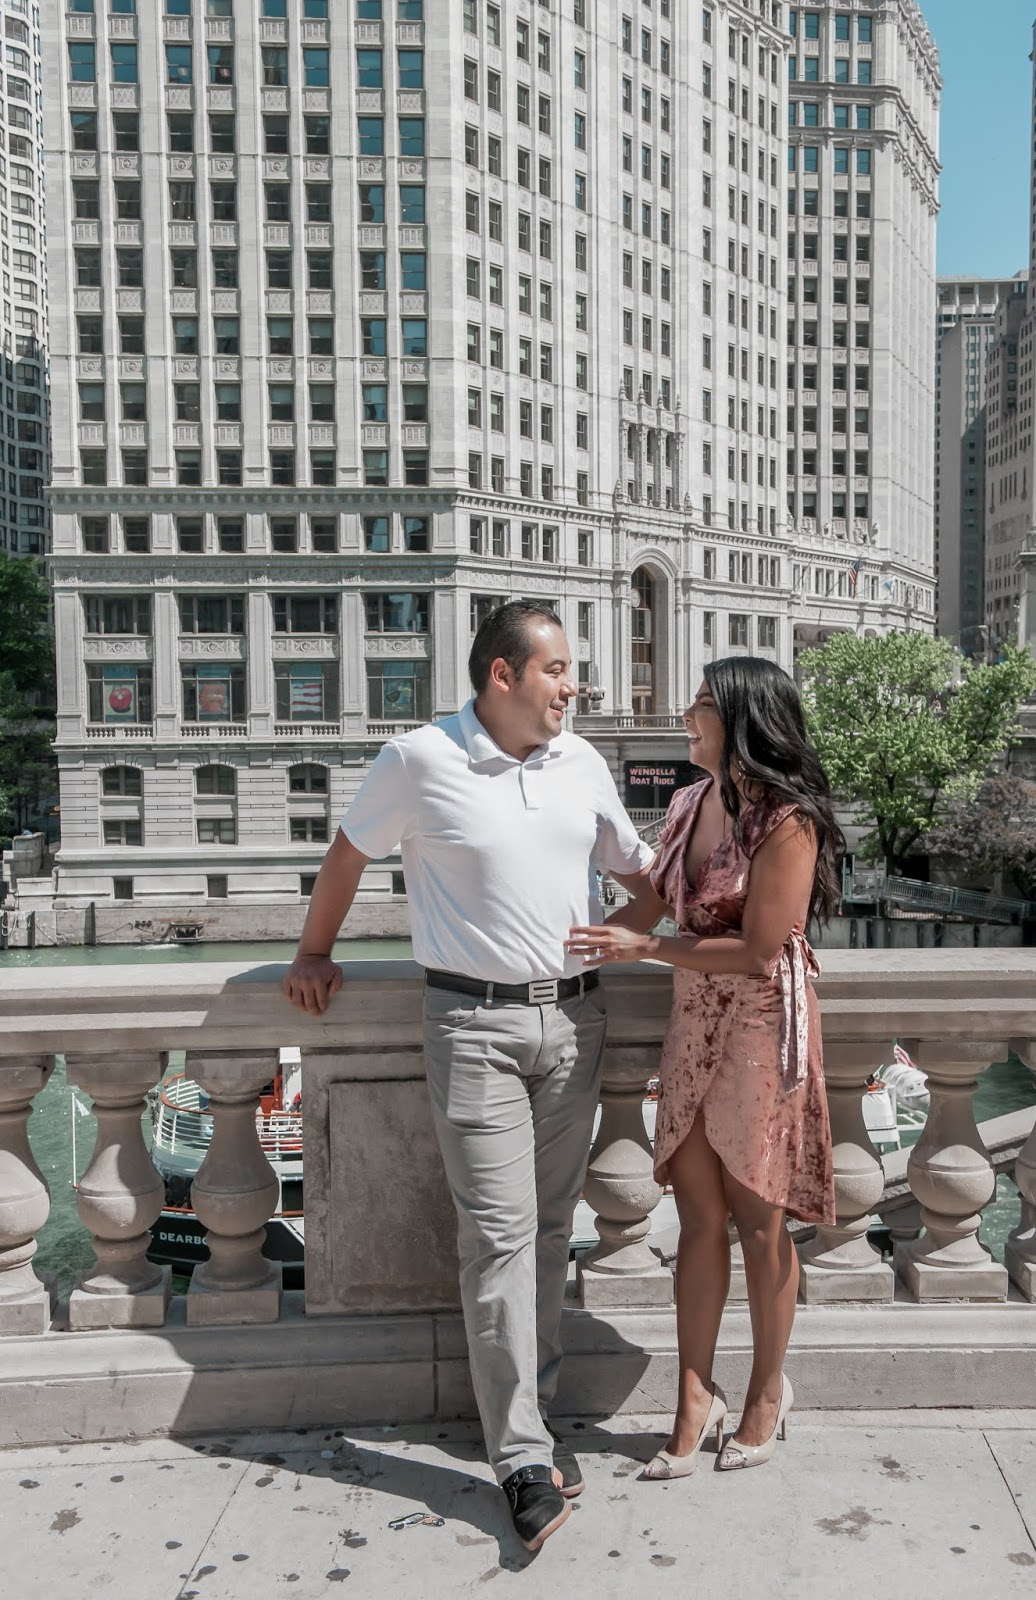 chicago-downtown-photoshoot-shoot-my-travel